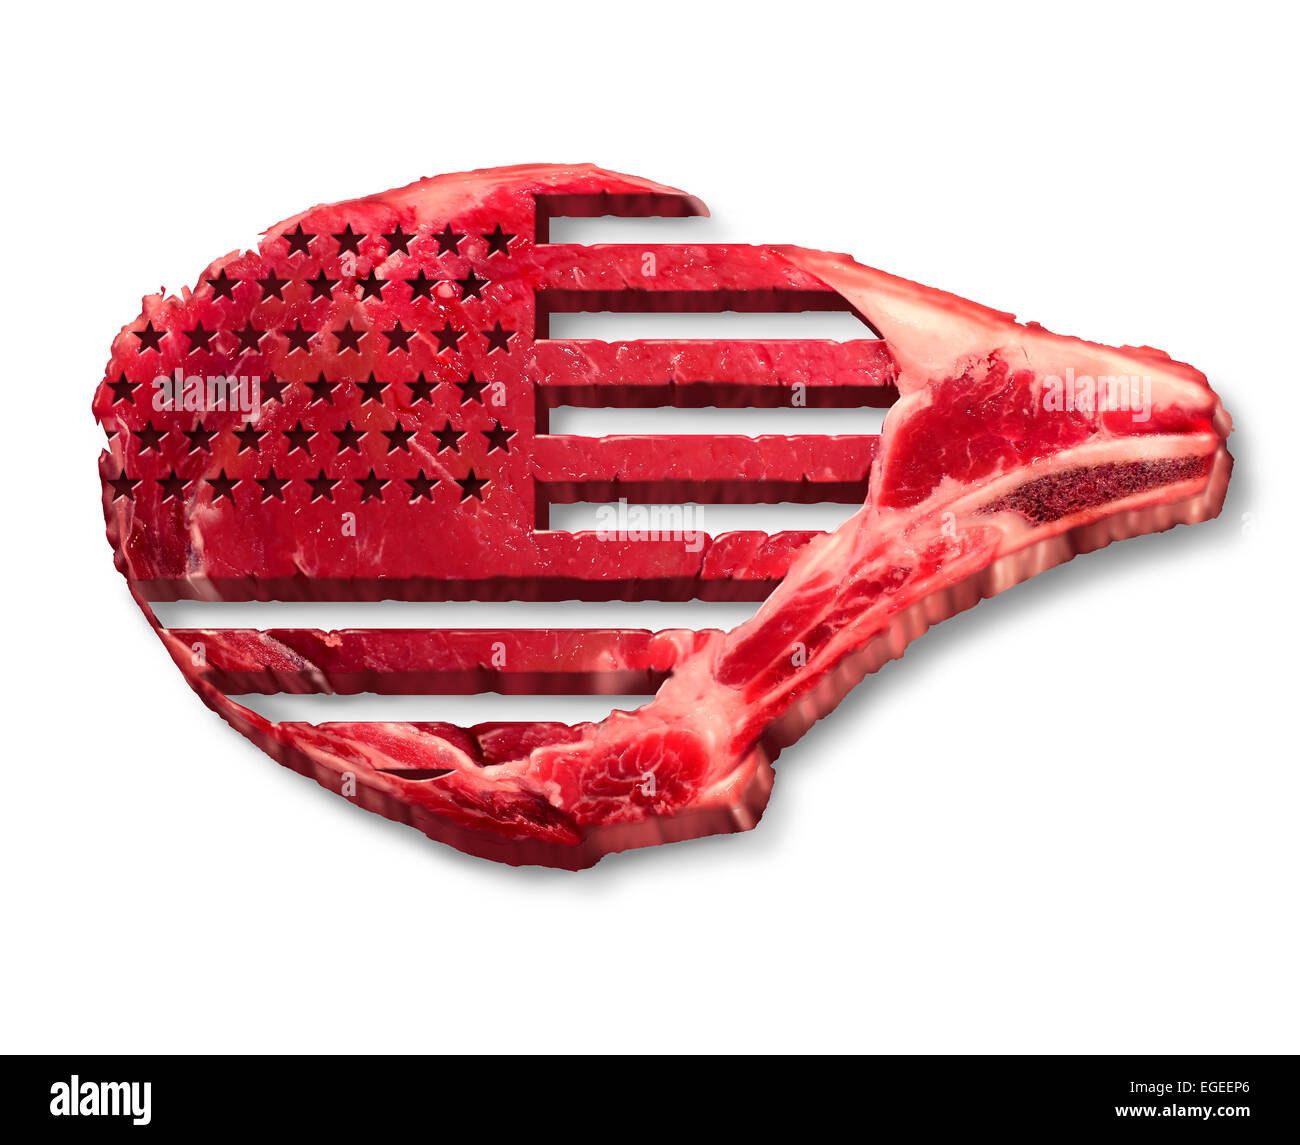 American beef industry concept as cuts of red meat steak symbol with the flag of the united states carved inside - Stock Image